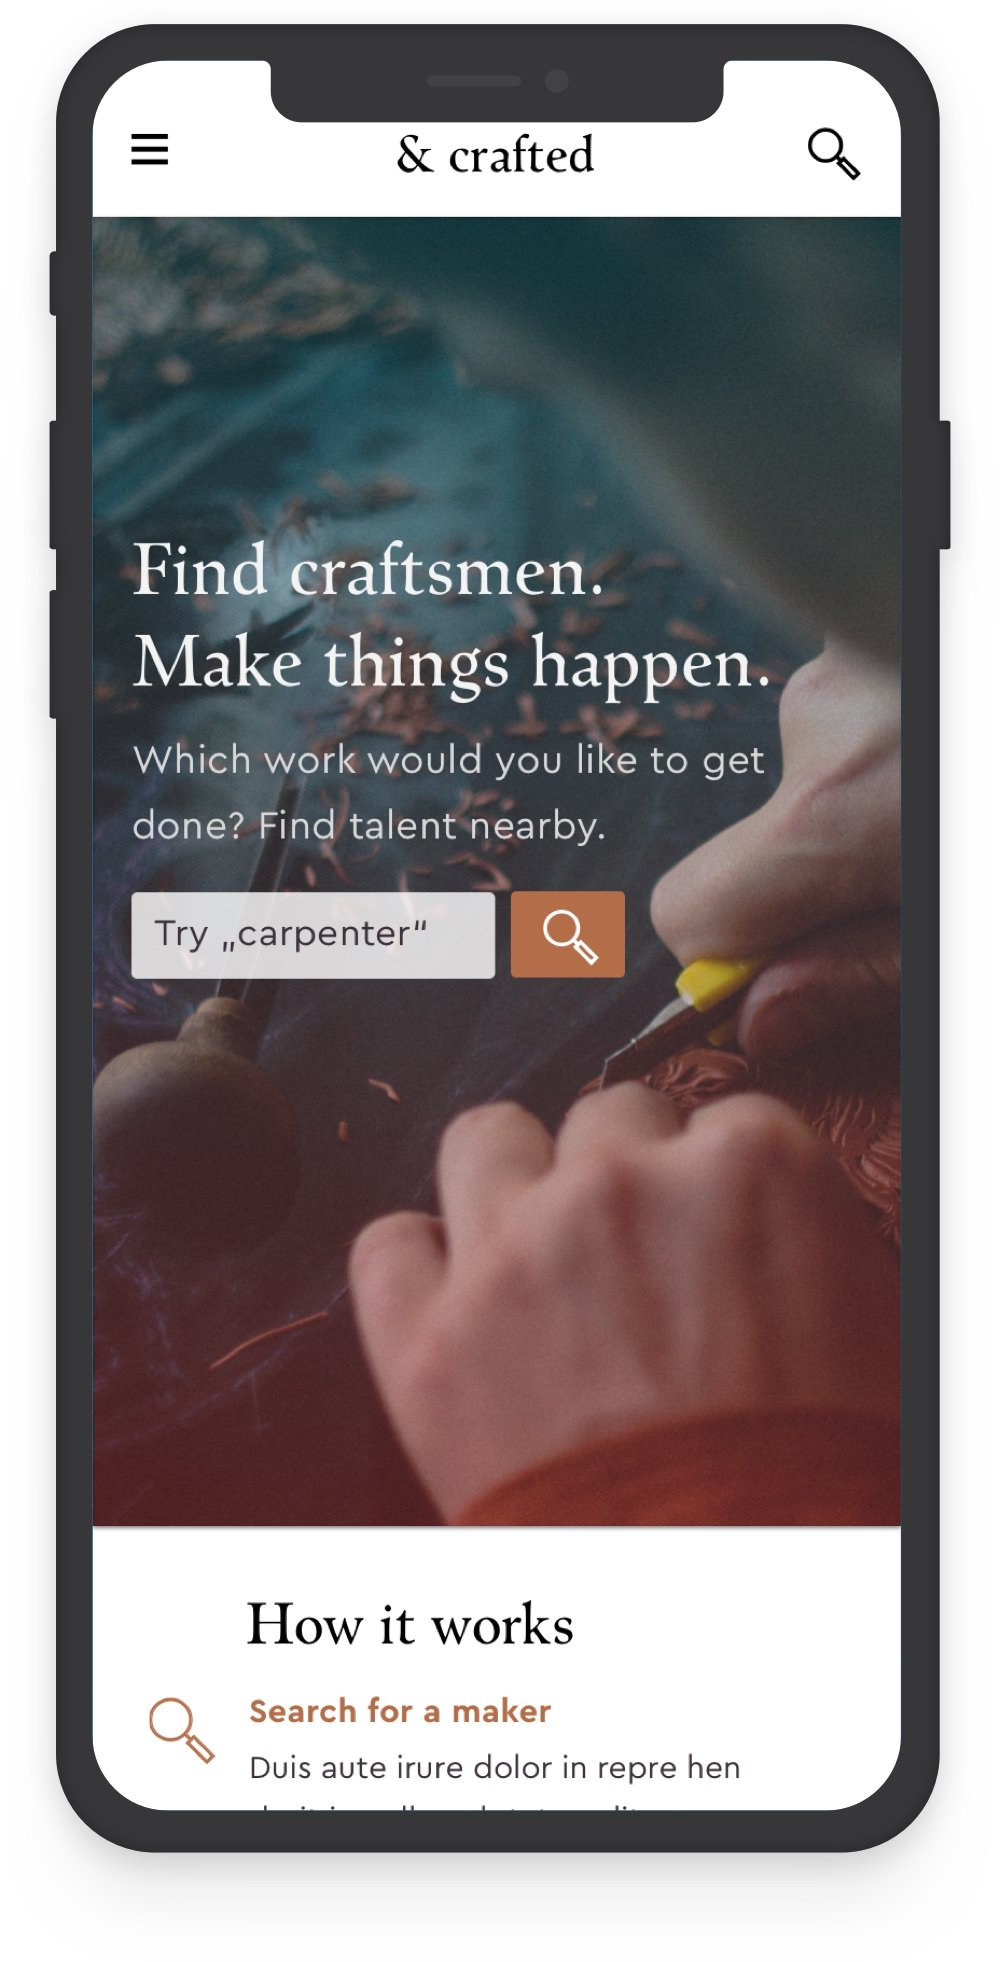 Mobile webdesign case study for crafts platform